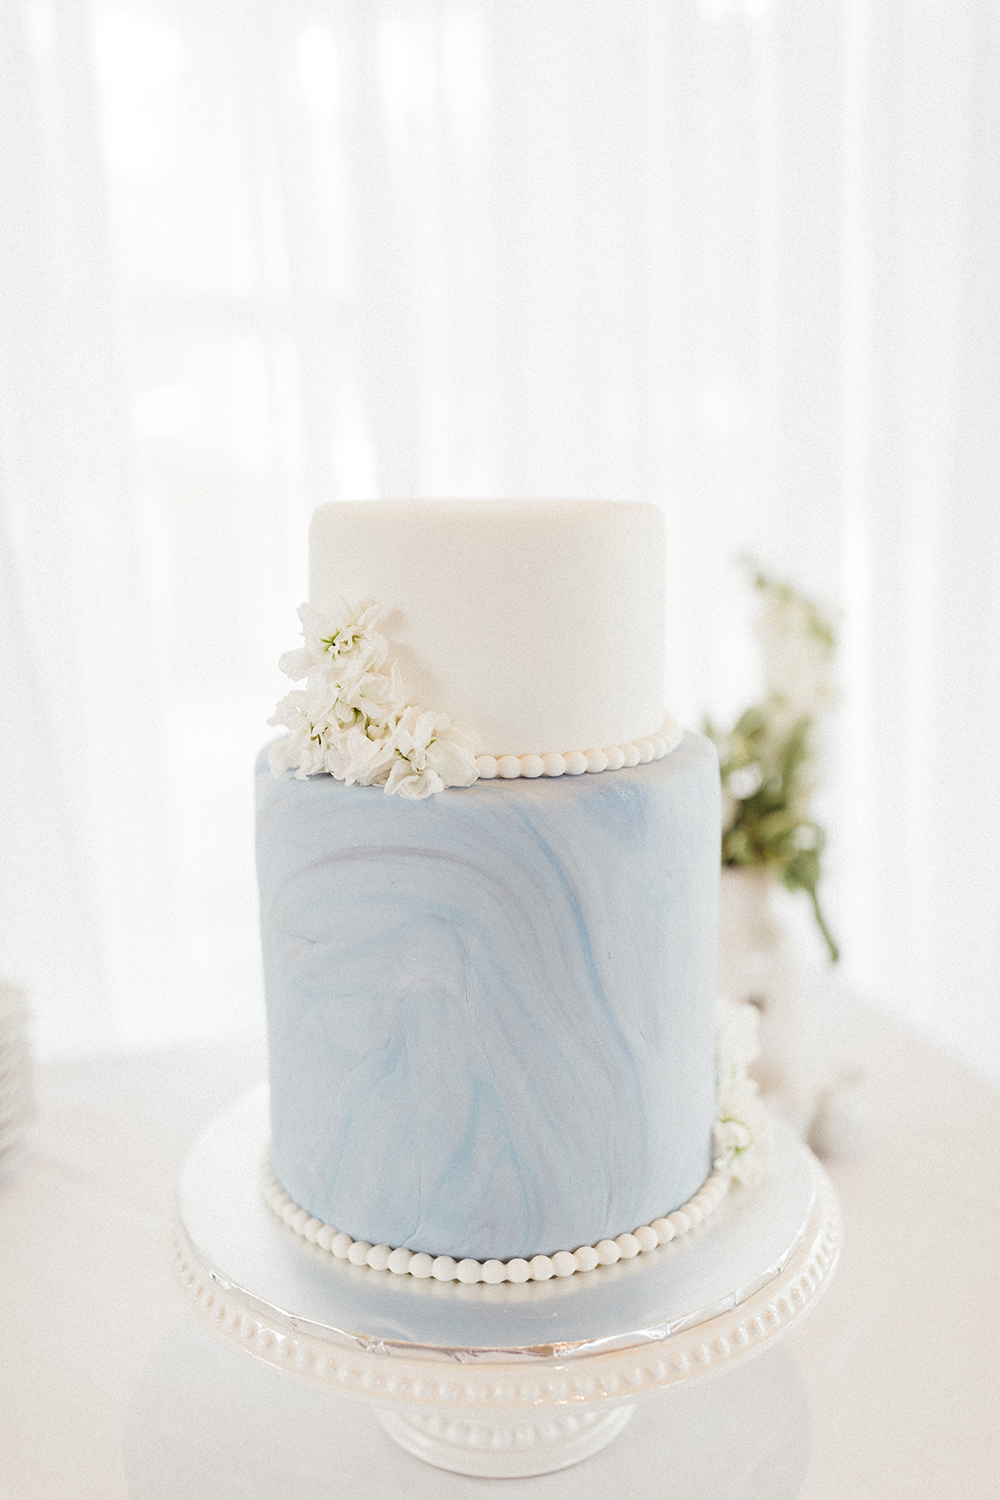 Blue & White Classic Wedding Cake | photo by Ash Simmons Photography | featured on I Do Y'all